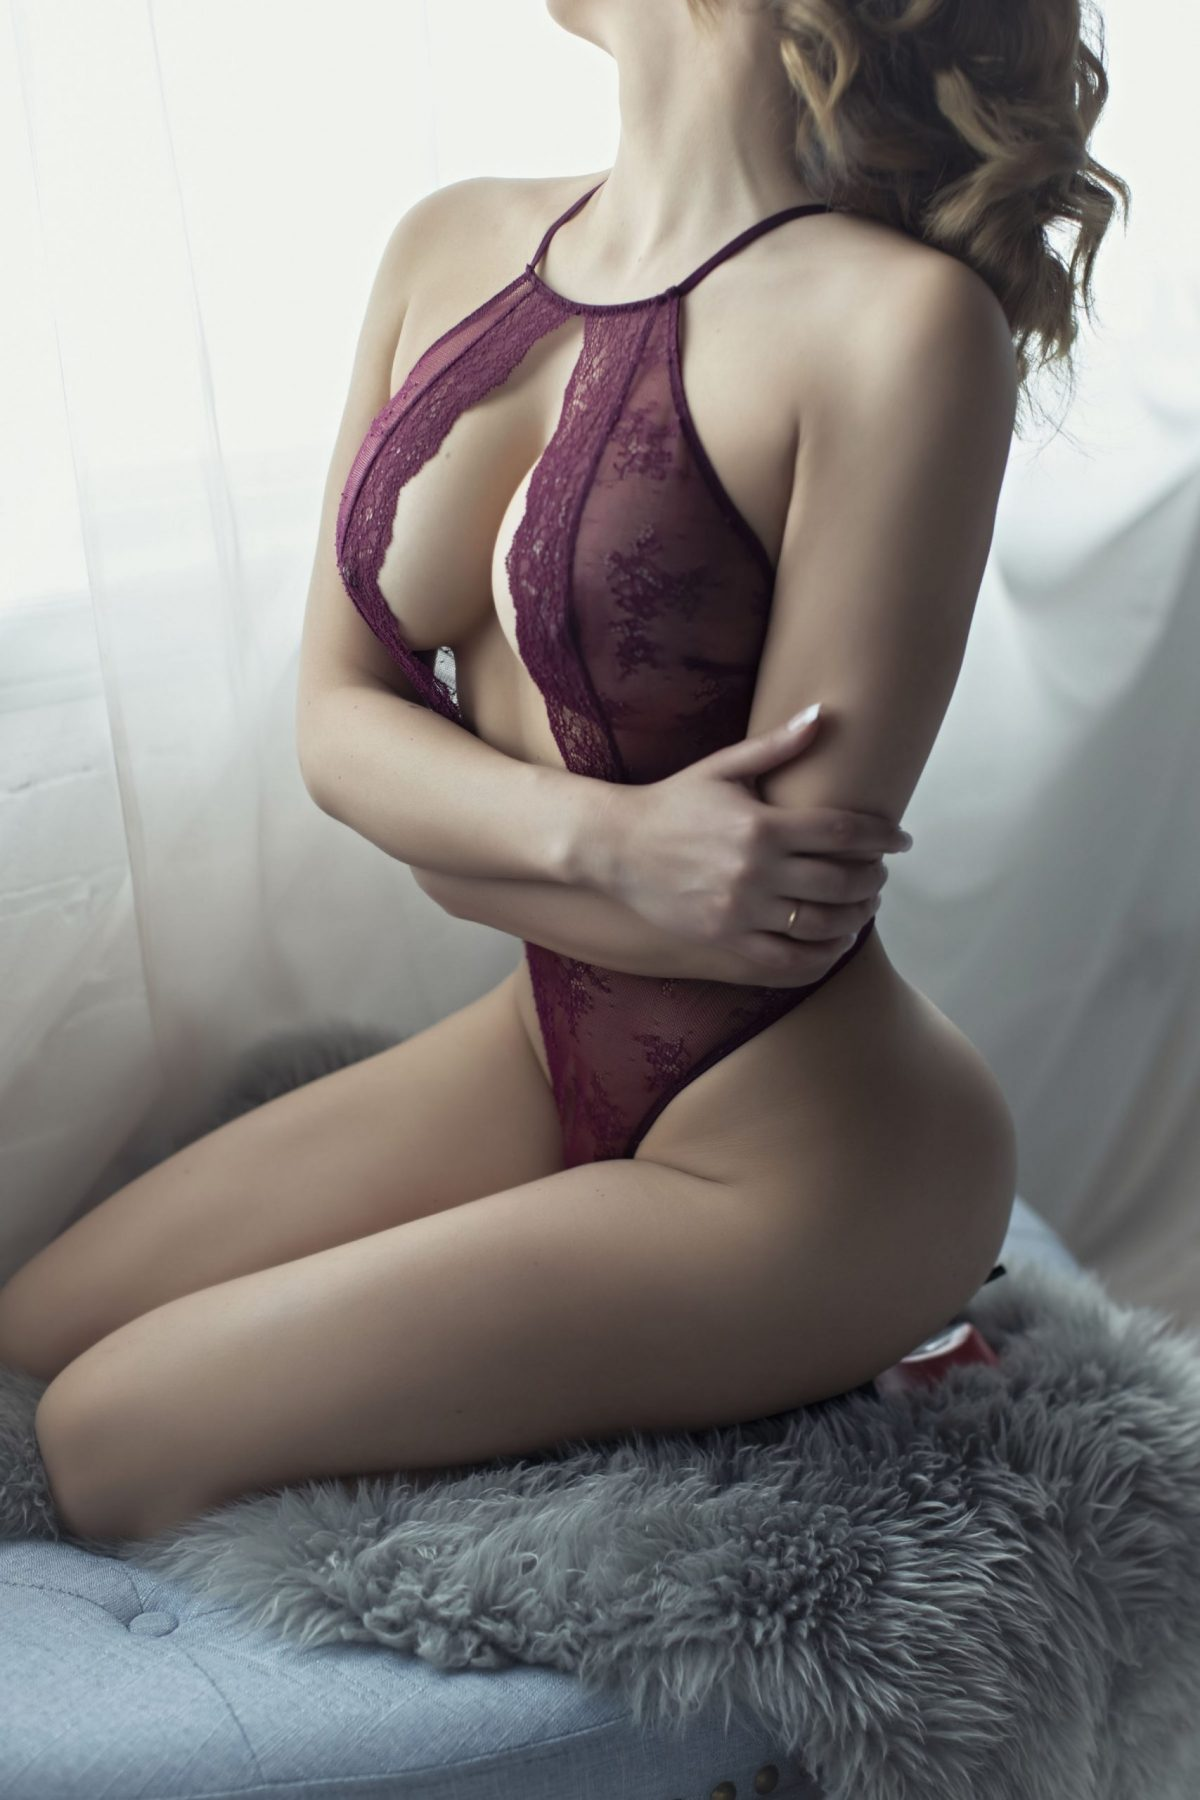 Toronto escorts companion upscale Alessandra Interests Duo Disability-friendly Non-smoking Age Mature Figure Slender Tall Breasts Enhanced Hair Brunette Ethnicity Latina Tattoos None Arrival Video